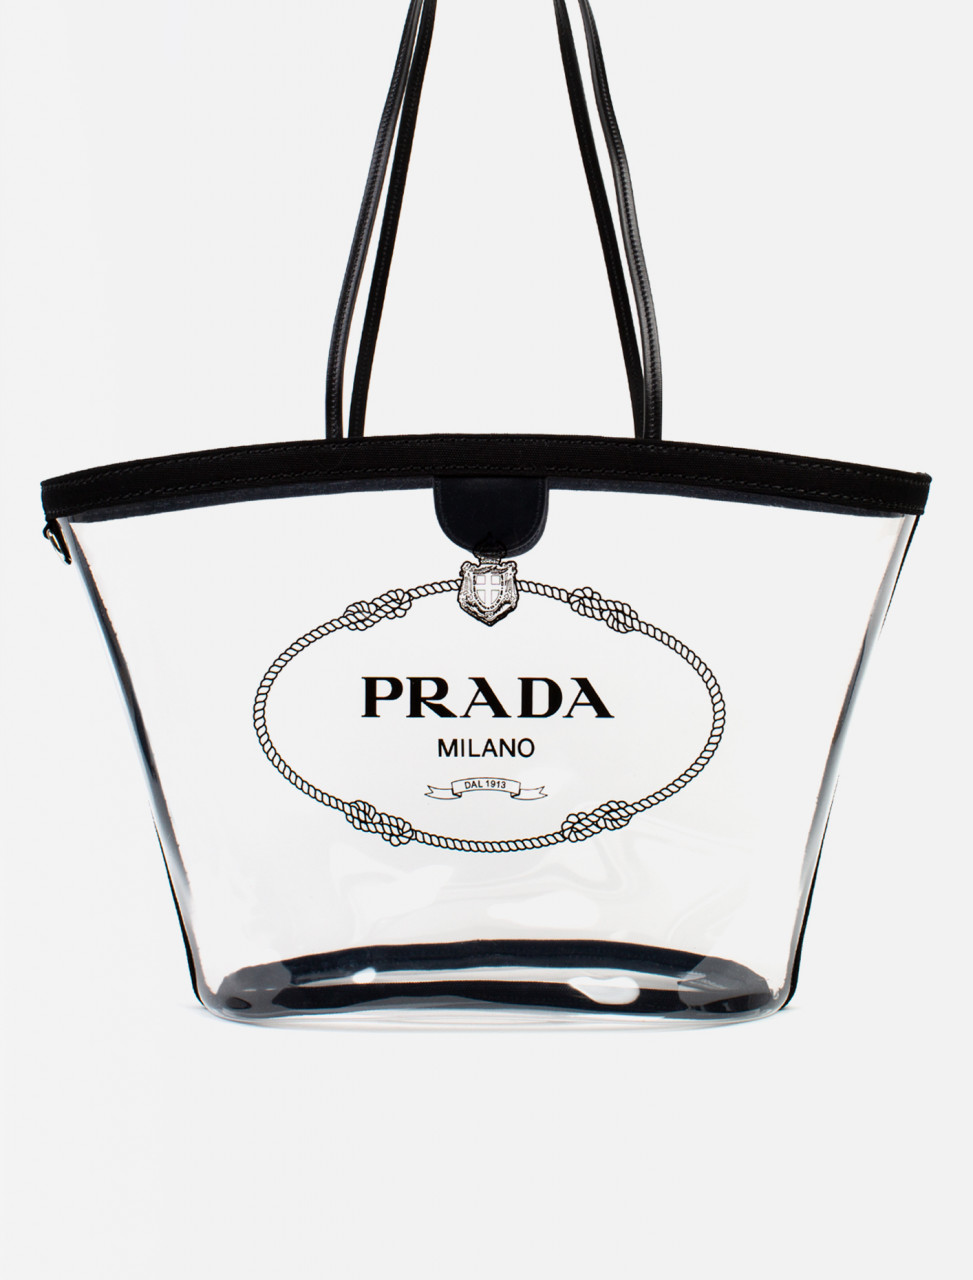 34c4c1ada847 Prada Clear PVC Handbag | Voo Store Berlin | Worldwide Shipping